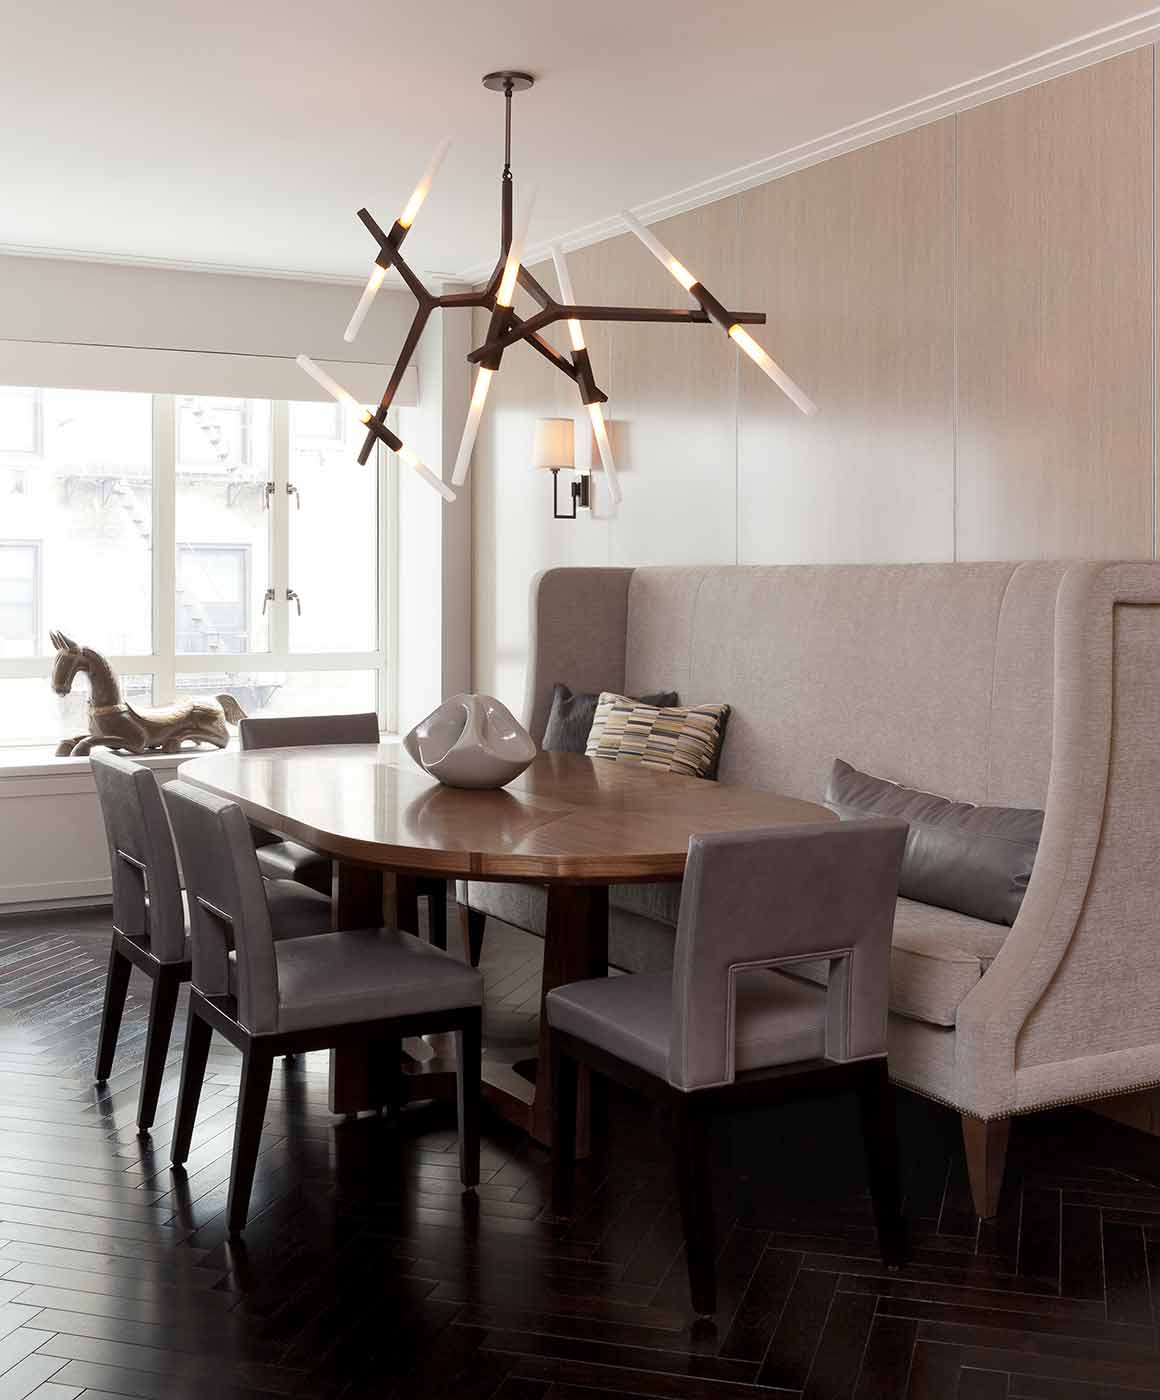 custom banquette we upholstered in lakeshore by holly hunt